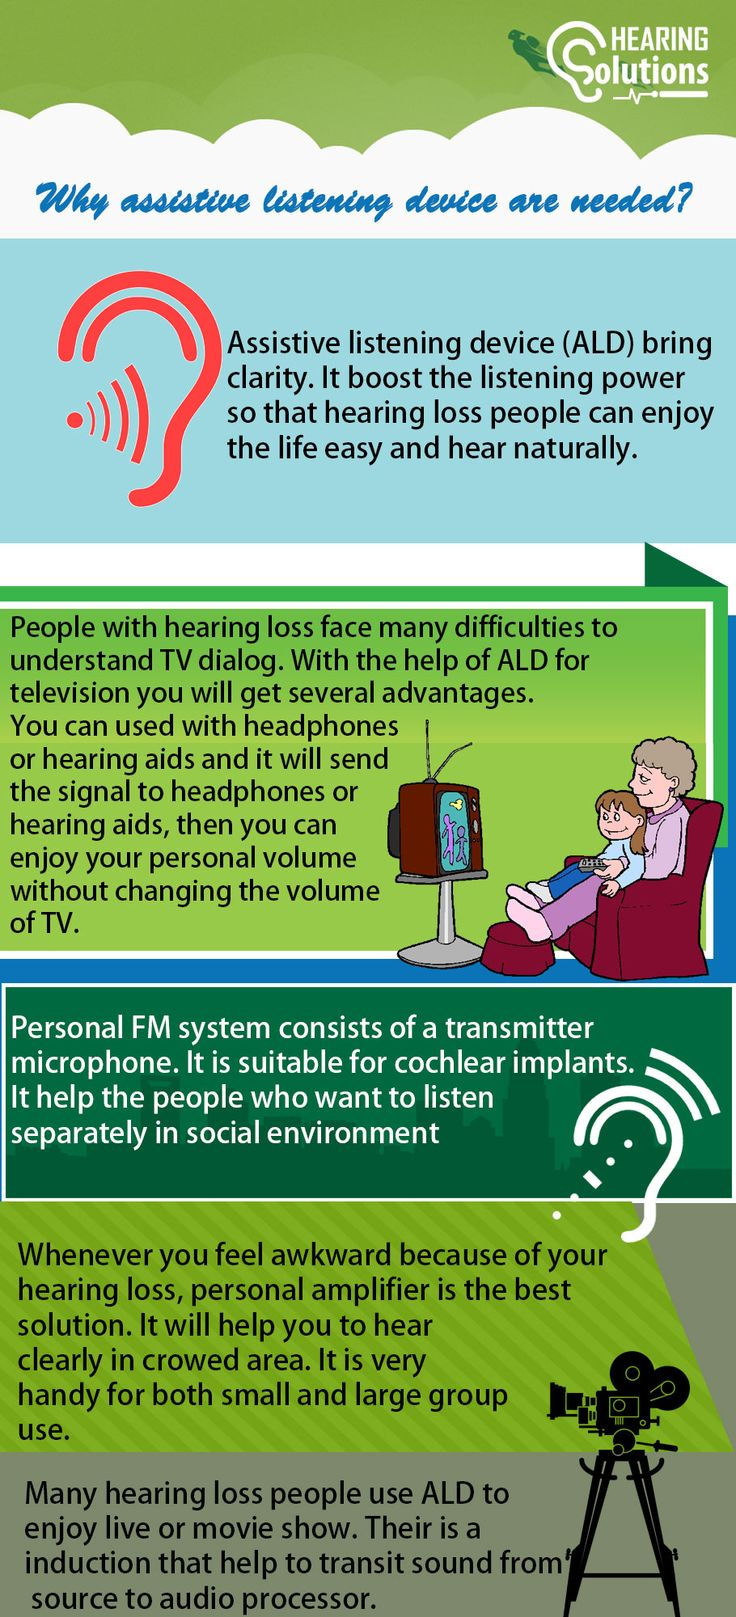 An Assistive listening device is used to improve hearing ability. It is used in a variety of situations where people are unable to distinguish speech in noise. The ALD may be used to help HOH (Hard of Hearing) people hear televisions and other audio devices. ALD usually uses a microphone to capture an audio source. For more visit:-  https://www.hearingsol.com